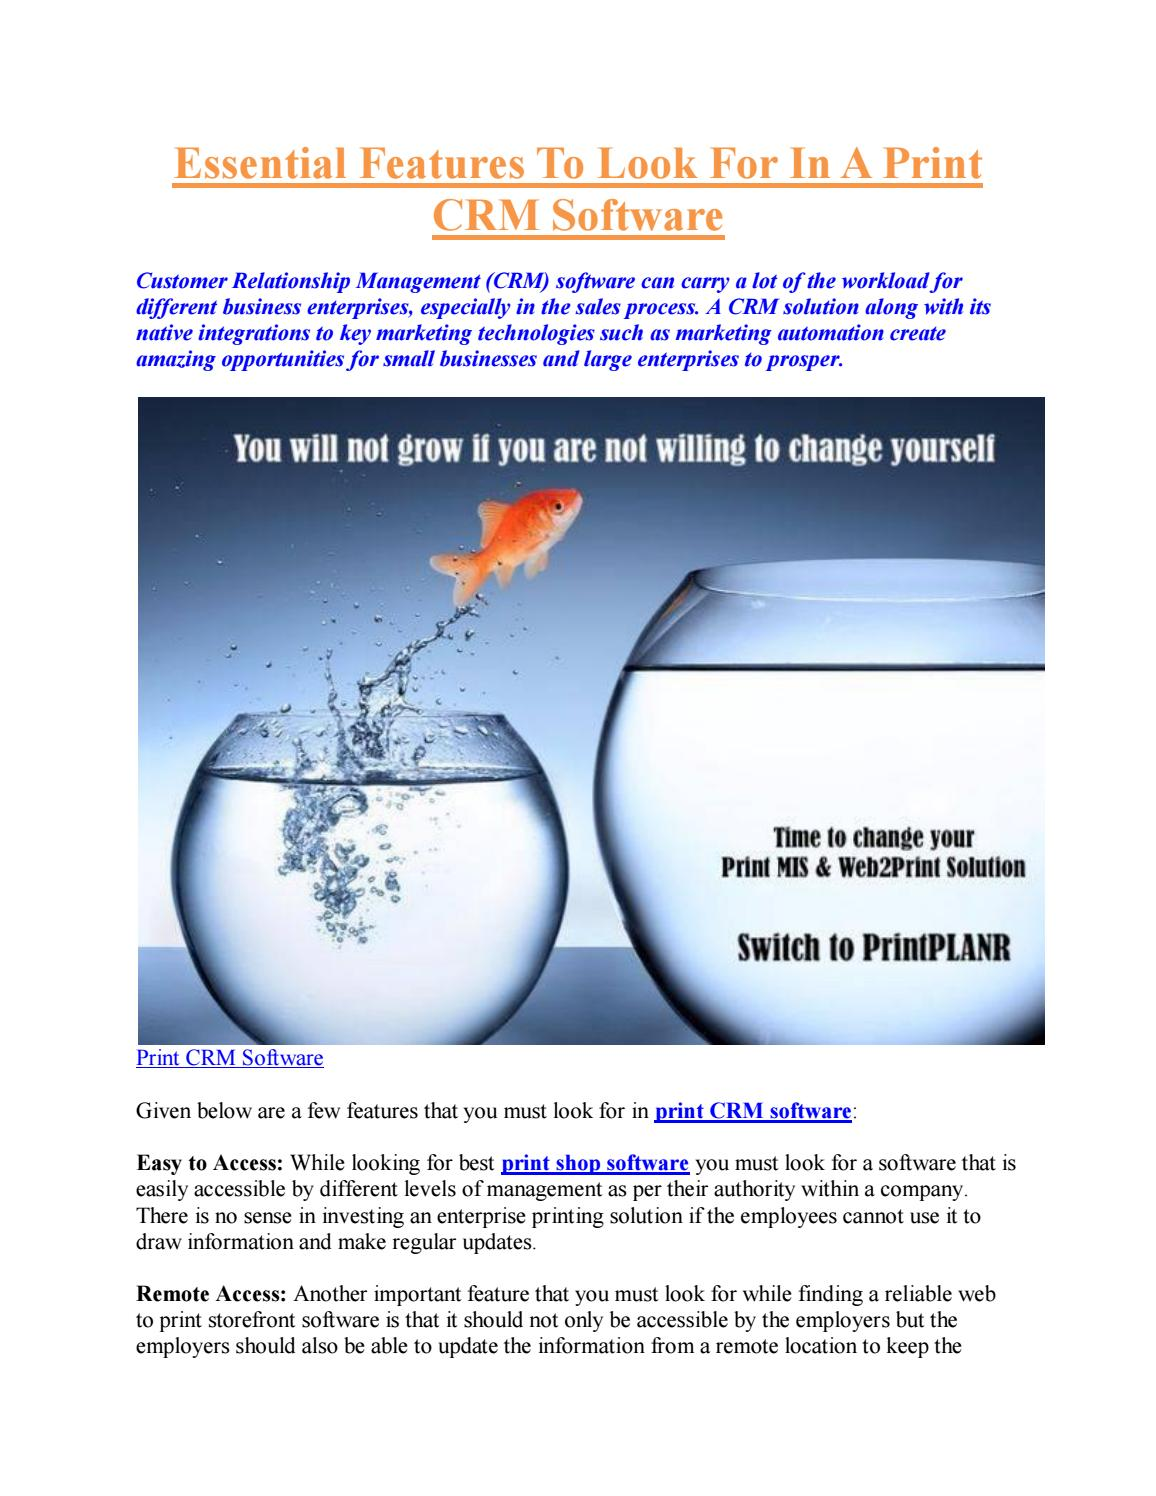 Print CRM Software Essential Features To Look For by